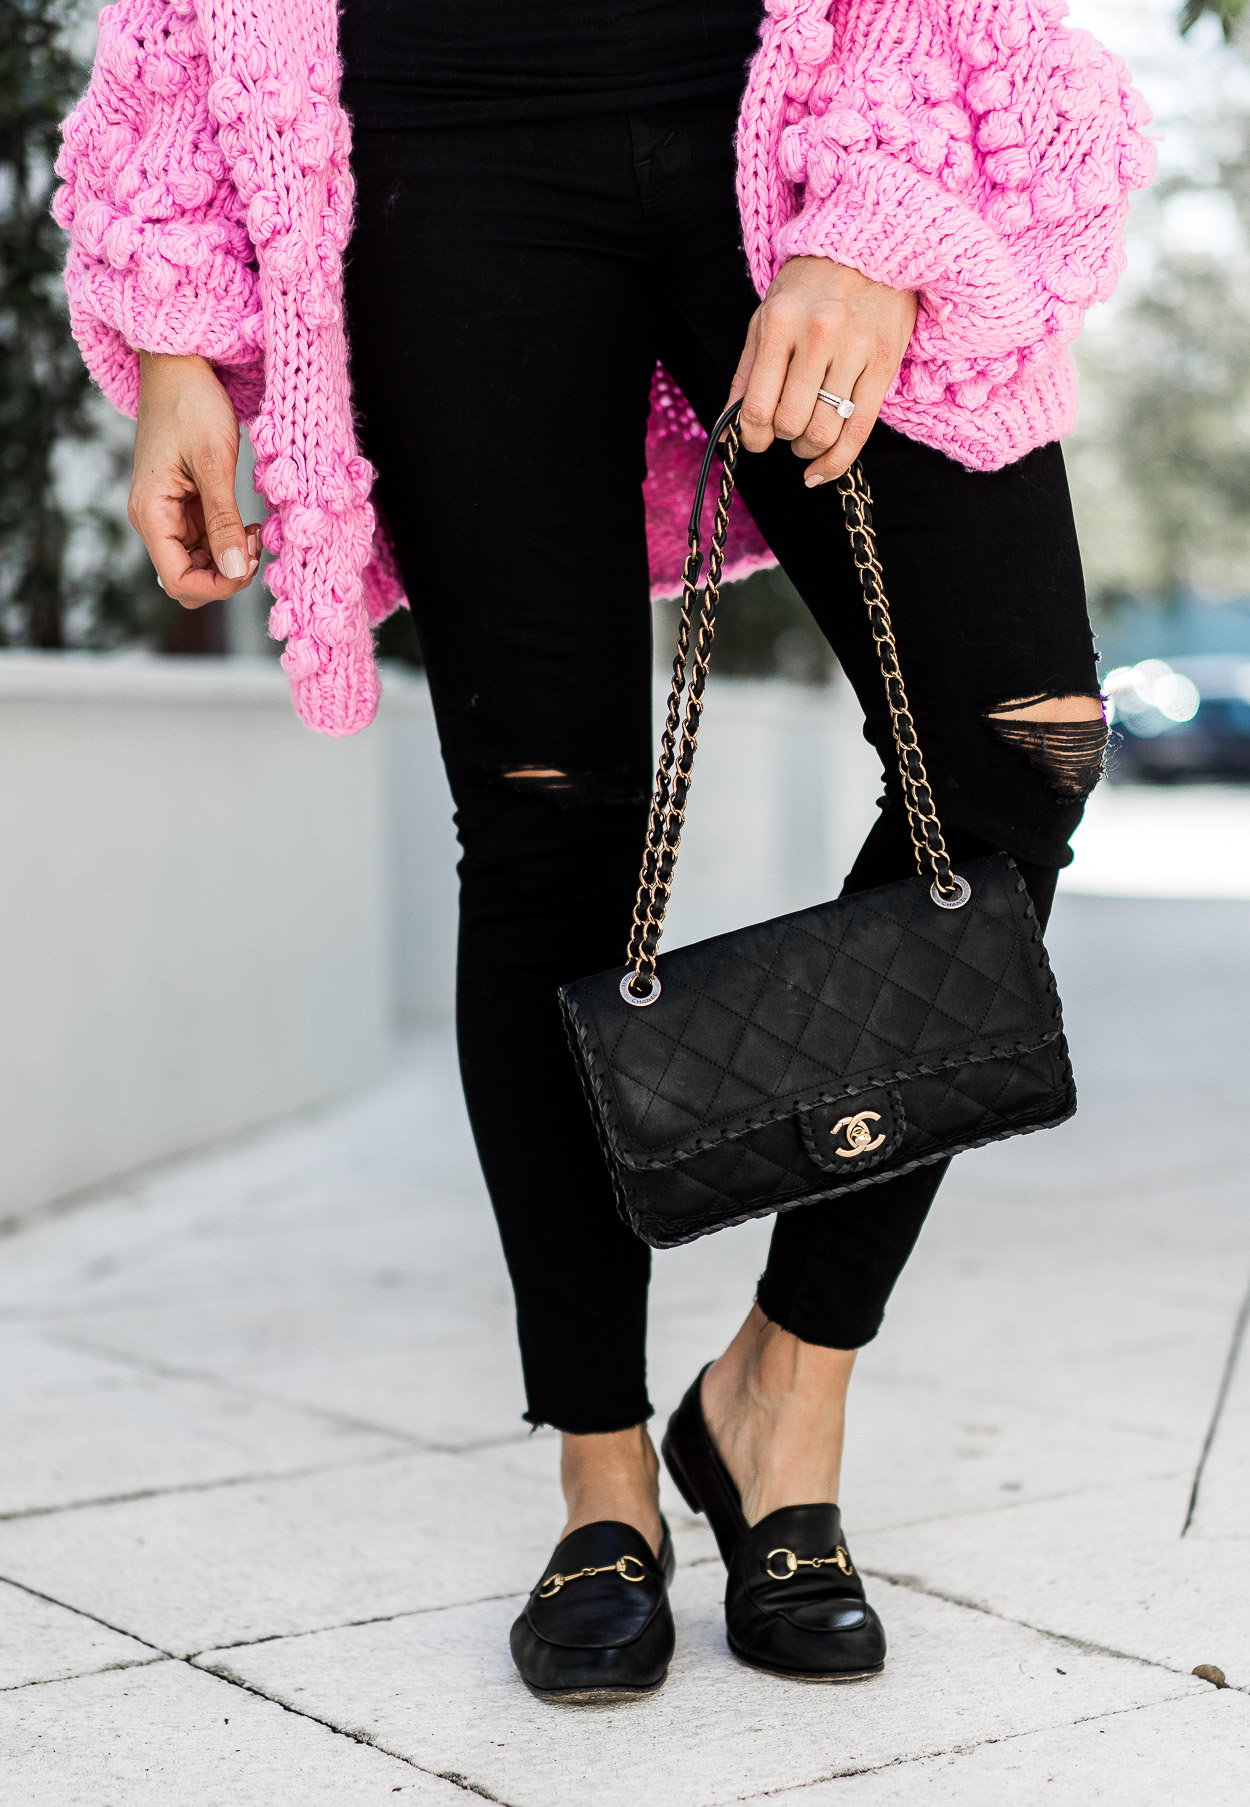 Blogger wears Gucci loafers with pink pom pom sweater and classic Chanel bag